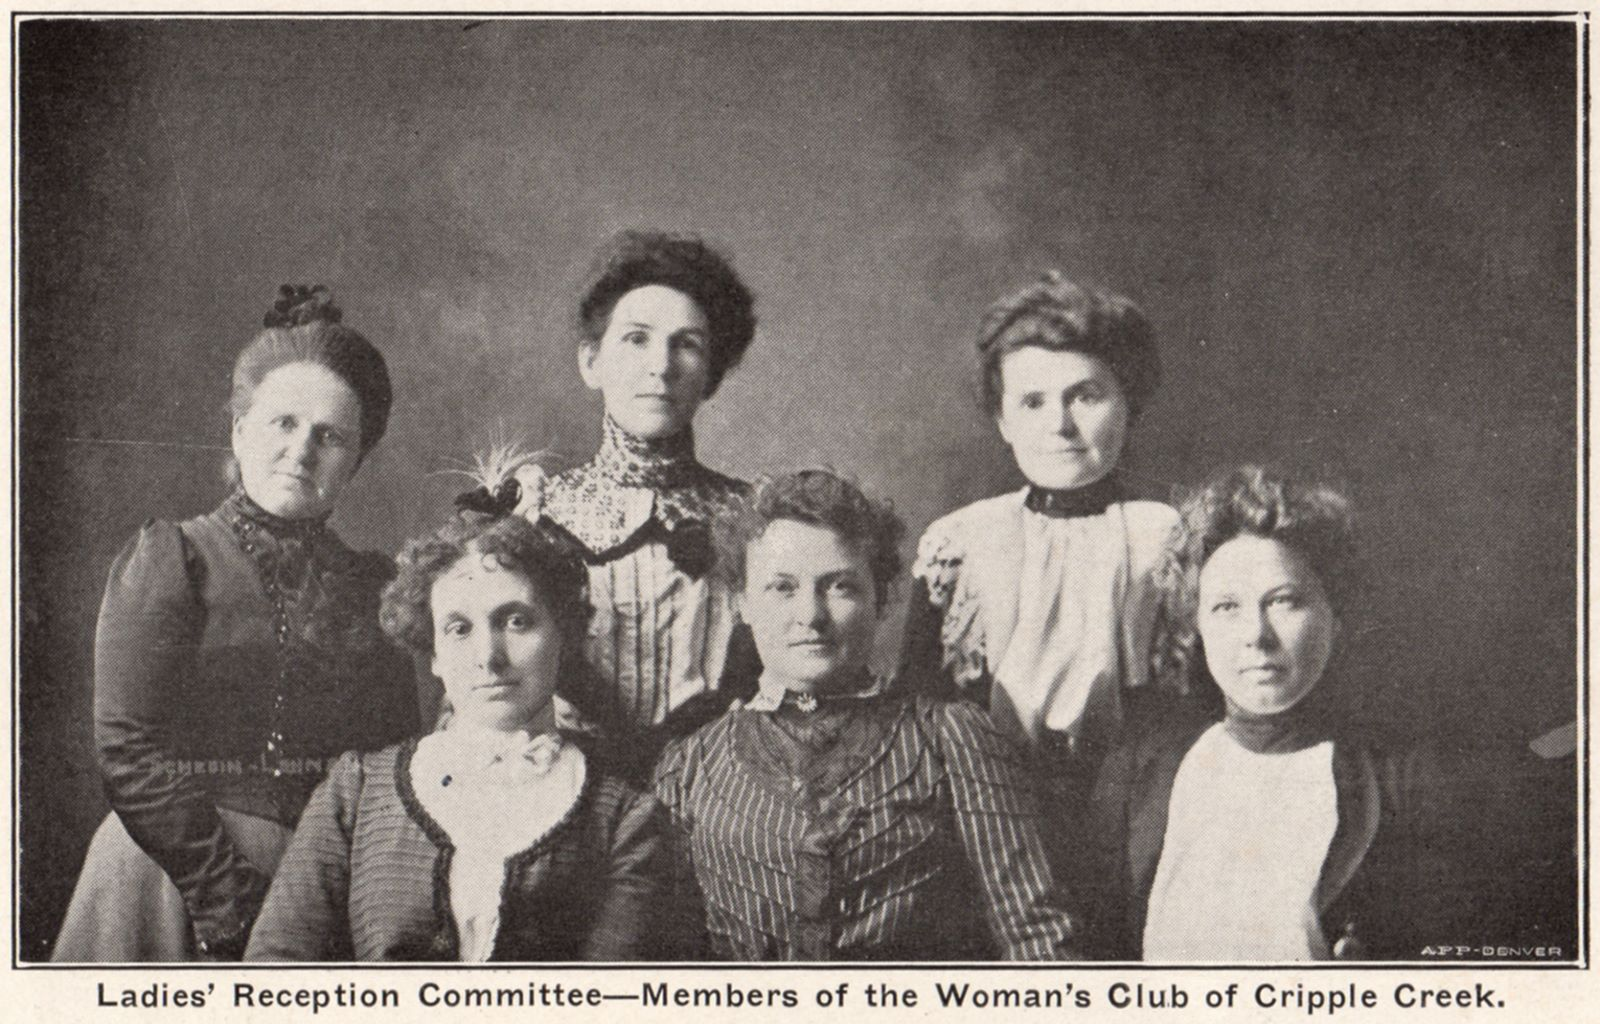 Ladies' Reception Committee - Members of the Woman's Club of Cripple Creek.